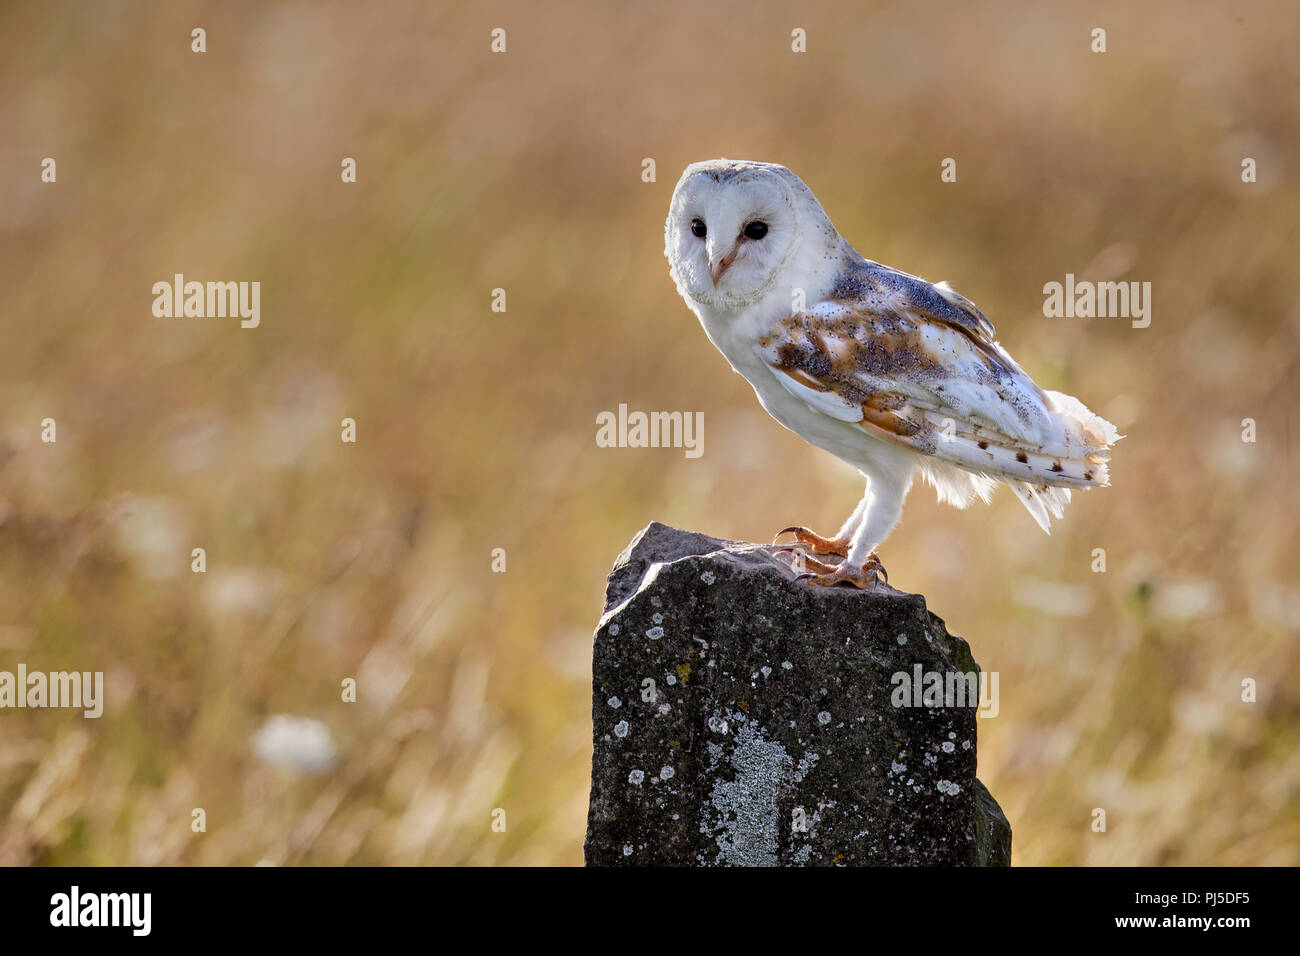 Barn Owl on rock in flower meadow - Stock Image